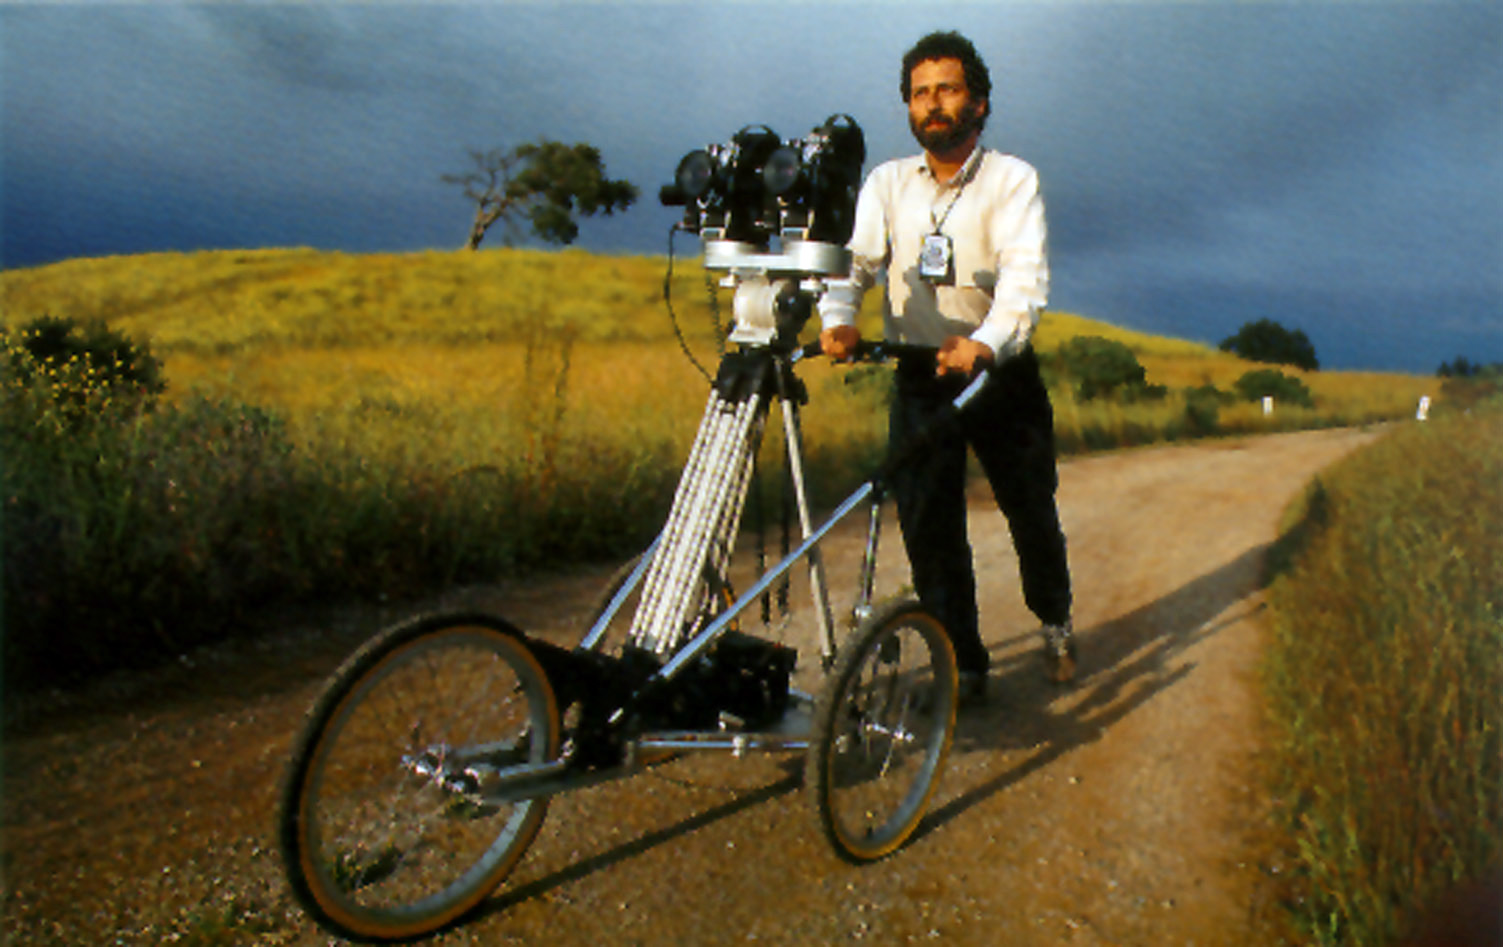 Michael-Naimark-shooting-an-early-movie-map-thefilmbook-1503px